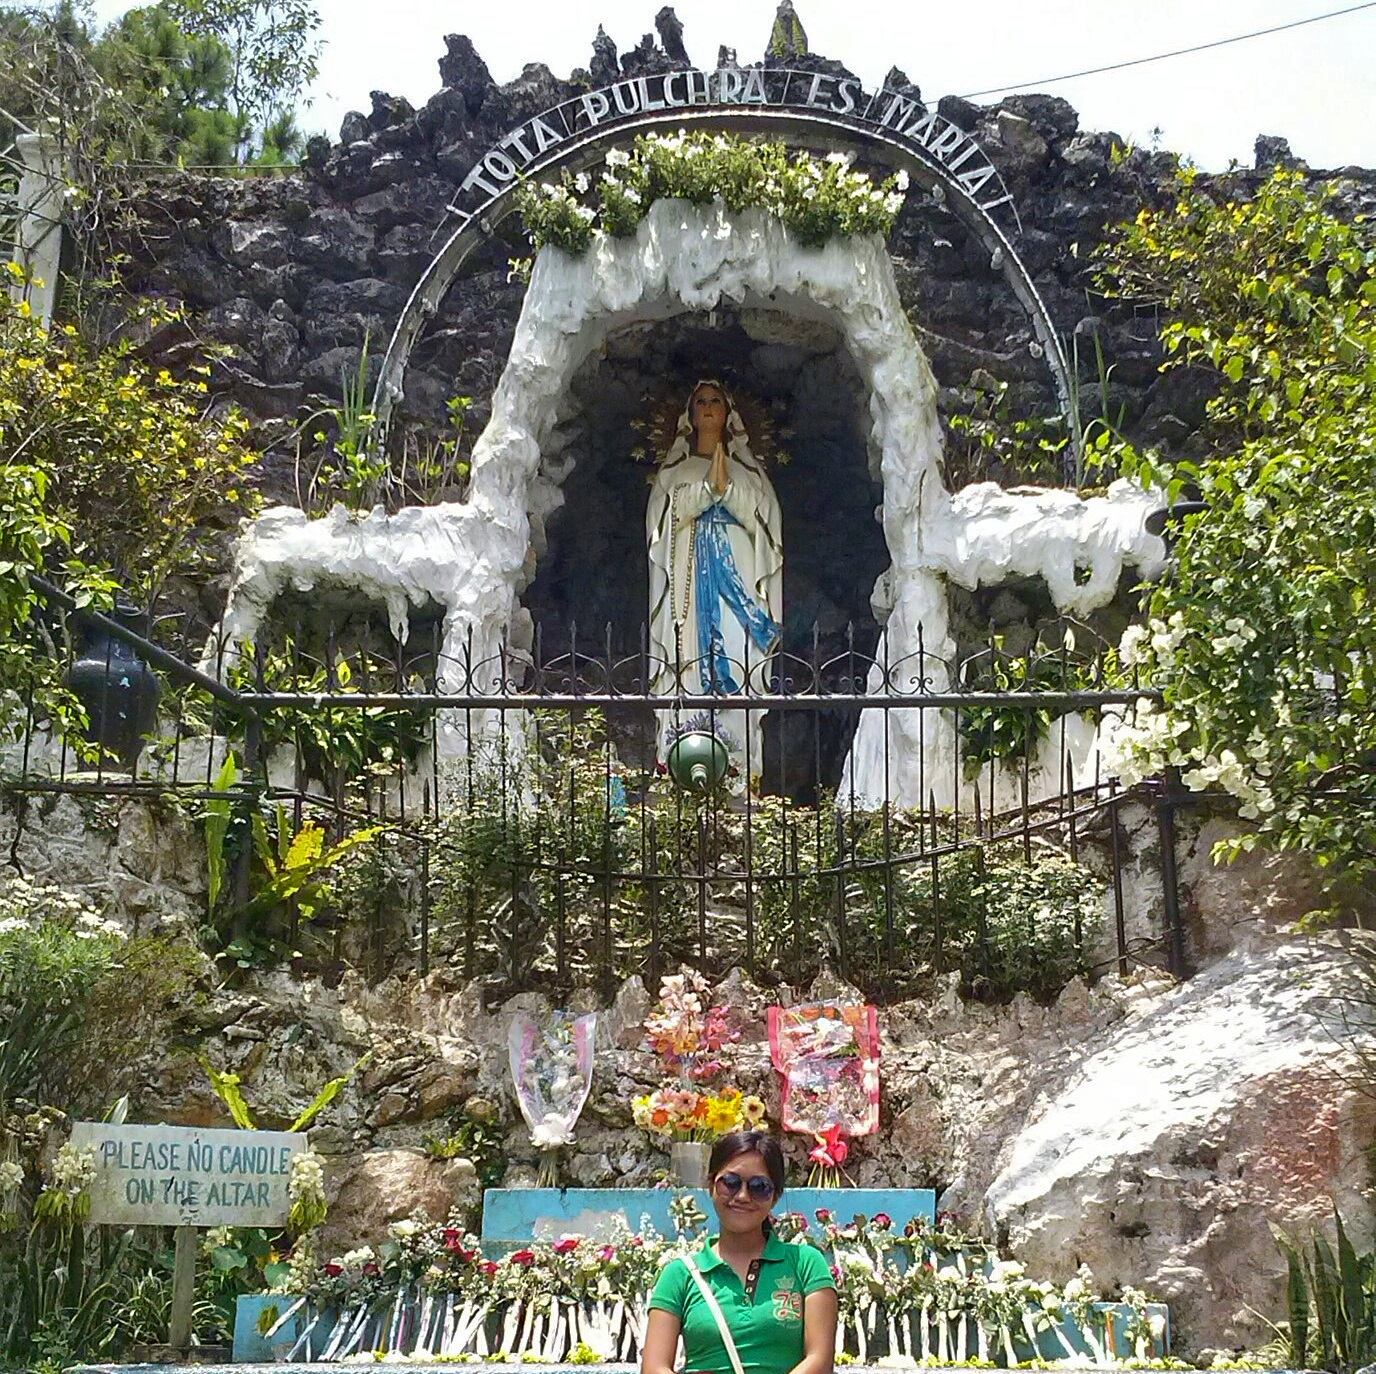 Shrine of Our Lady of Lourdes Grotto